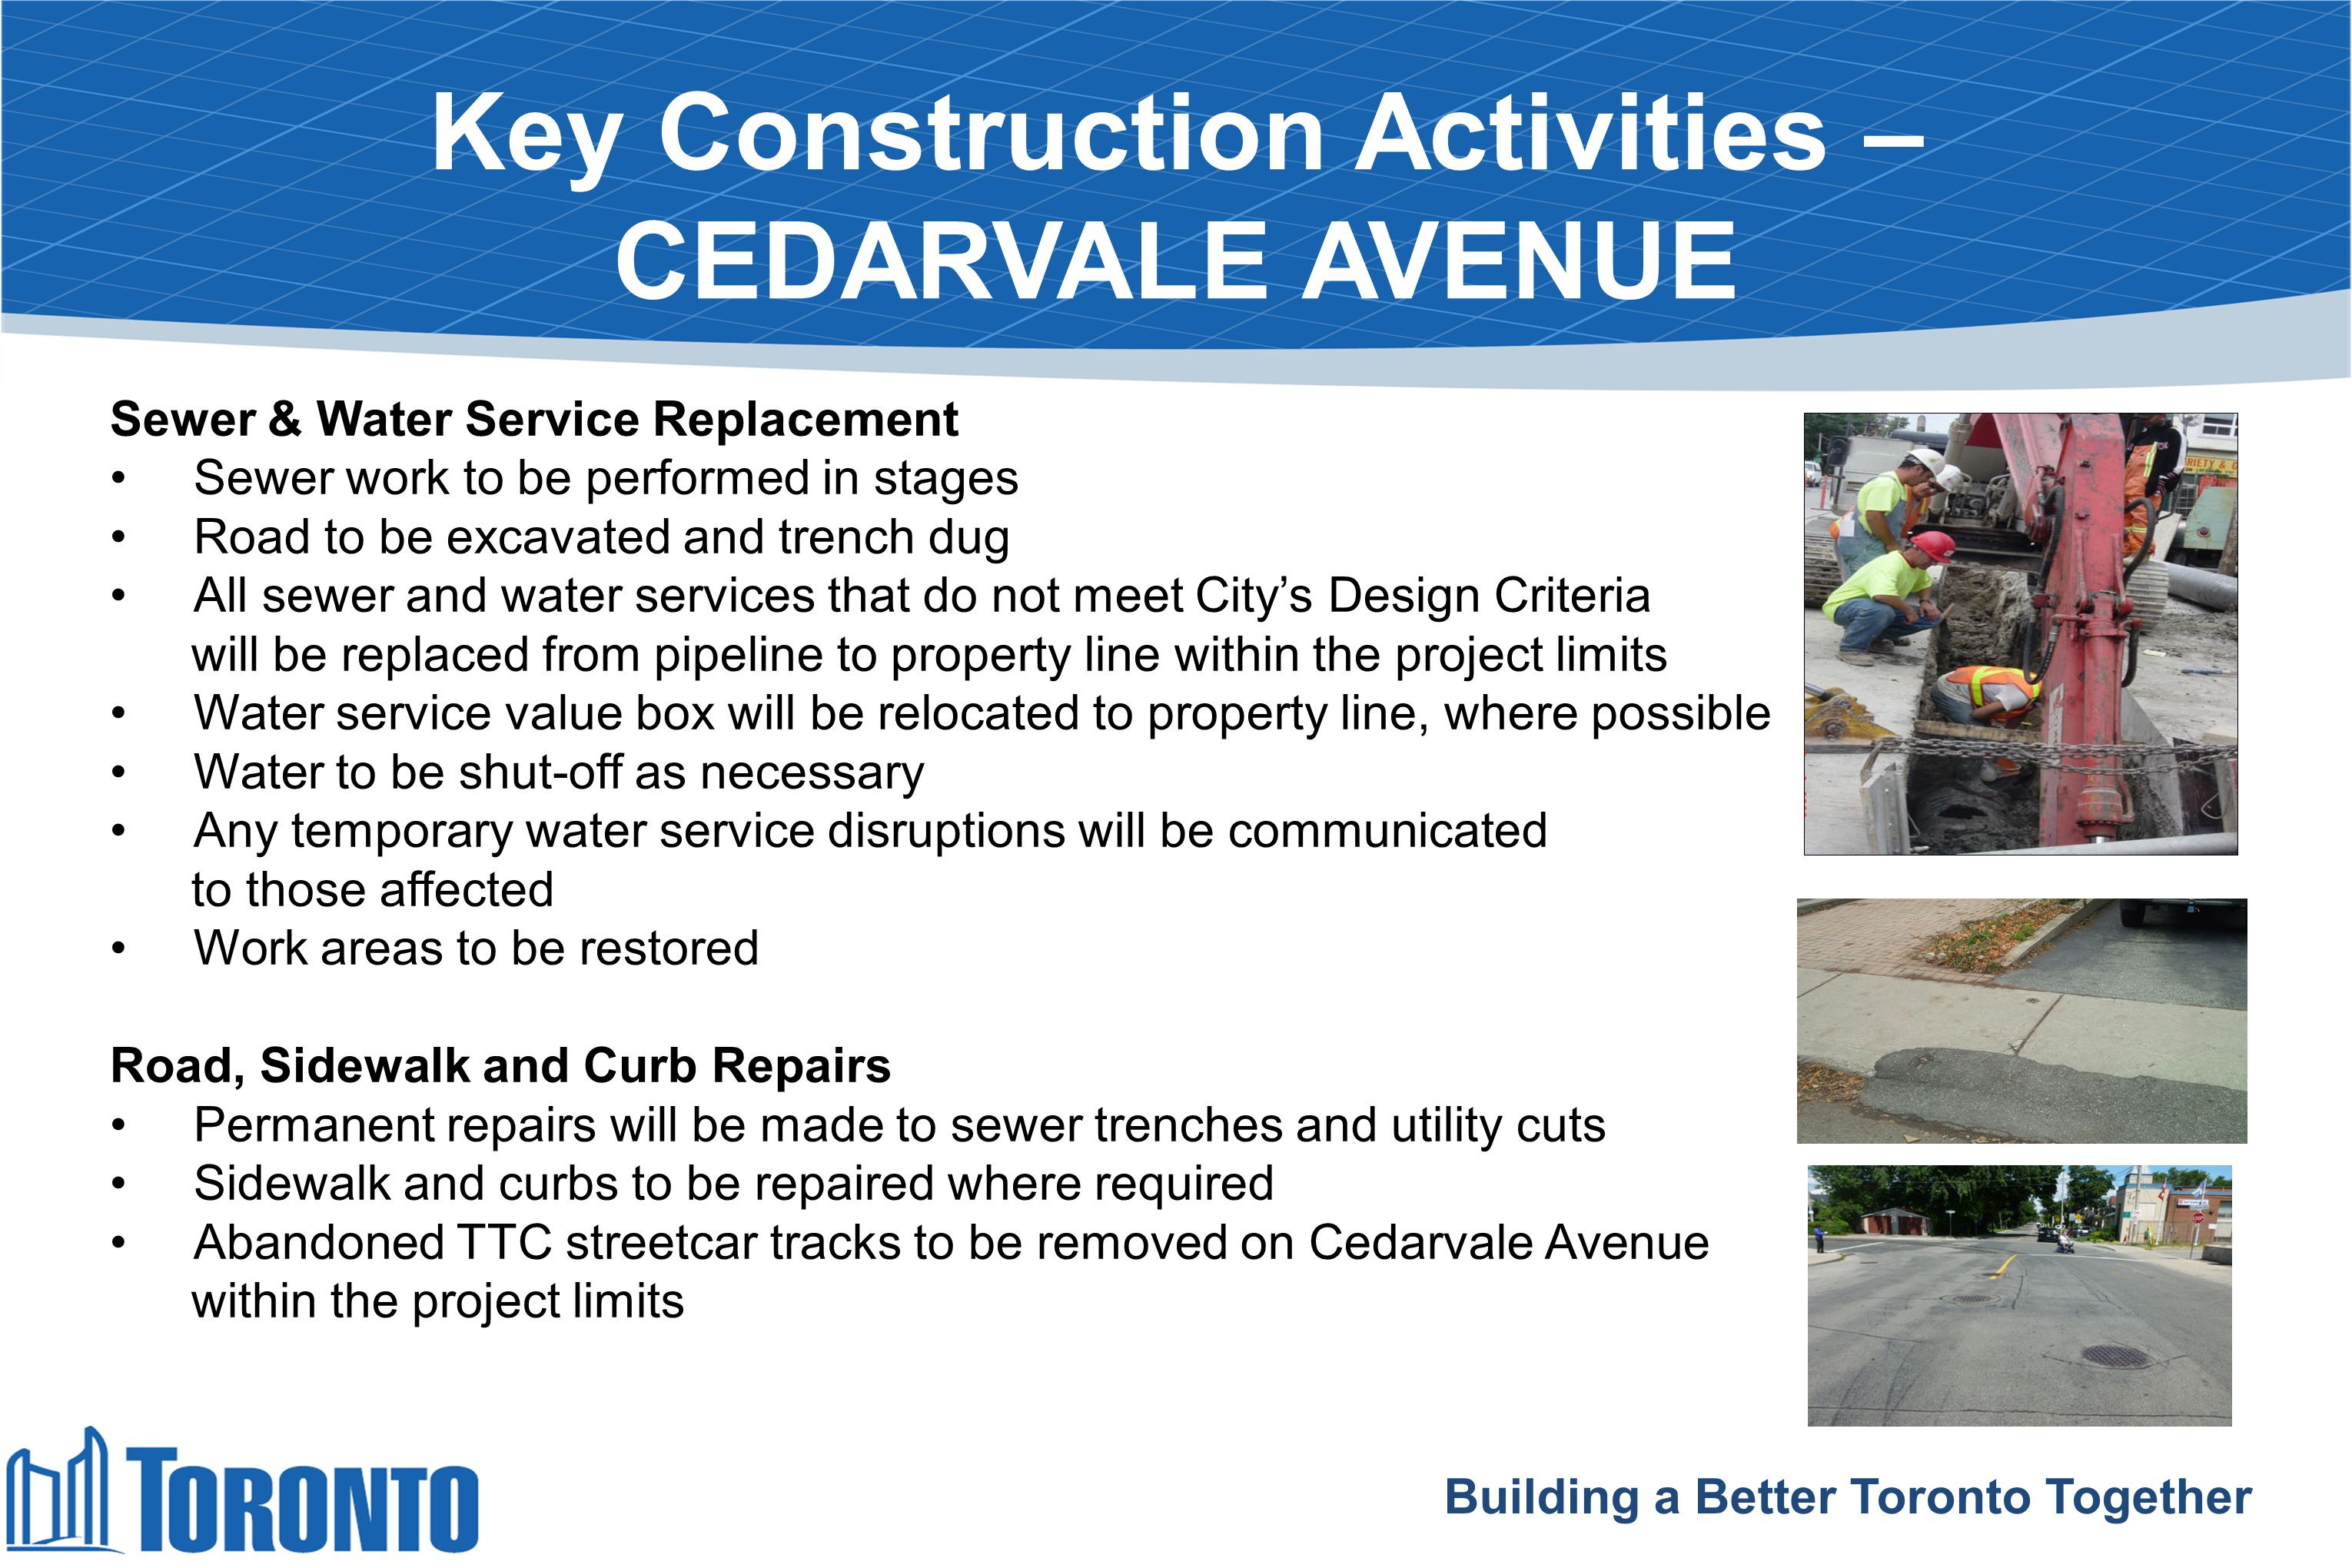 Key Construction Activities – CEDARVALE AVENUE Information on sequence of work Building a Better Toronto Together Sewer & Water Service Replacement Sewer work to be performed in stages Road to be excavated and trench dug All sewer and water services that do not meet City's Design Criteria will be replaced from pipeline to property line within the project limits Water service value box will be relocated to property line, where possible Water to be shut-off as necessary Any temporary water service disruptions will be communicated to those affected Work areas to be restored Road, Sidewalk and Curb Repairs Permanent repairs will be made to sewer trenches and utility cuts Sidewalk and curbs to be repaired where required Abandoned TTC streetcar tracks to be removed on Cedarvale Avenue within the project limits